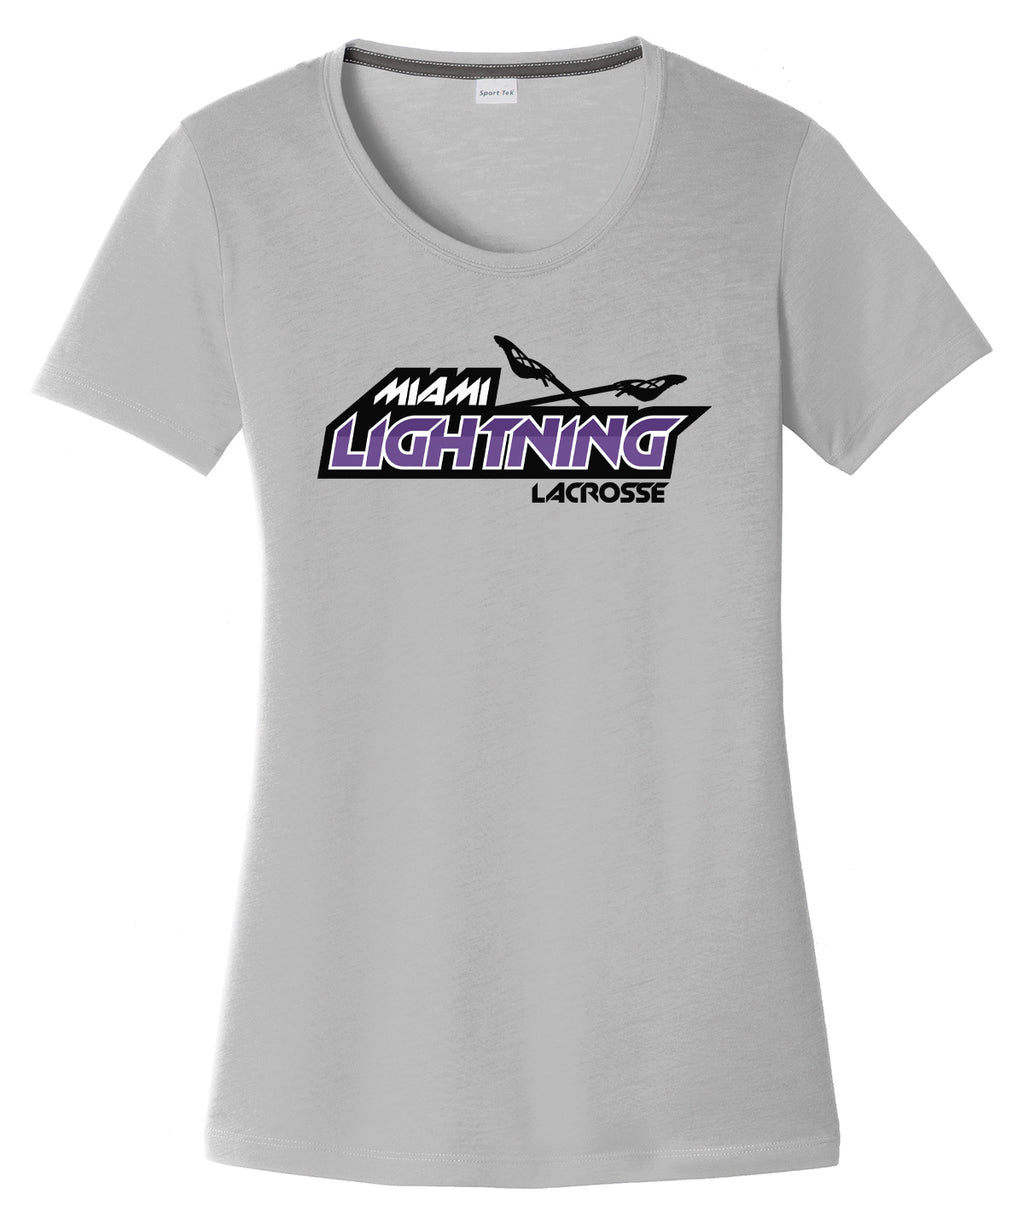 Miami Lightning Women's Silver CottonTouch Performance T-Shirt